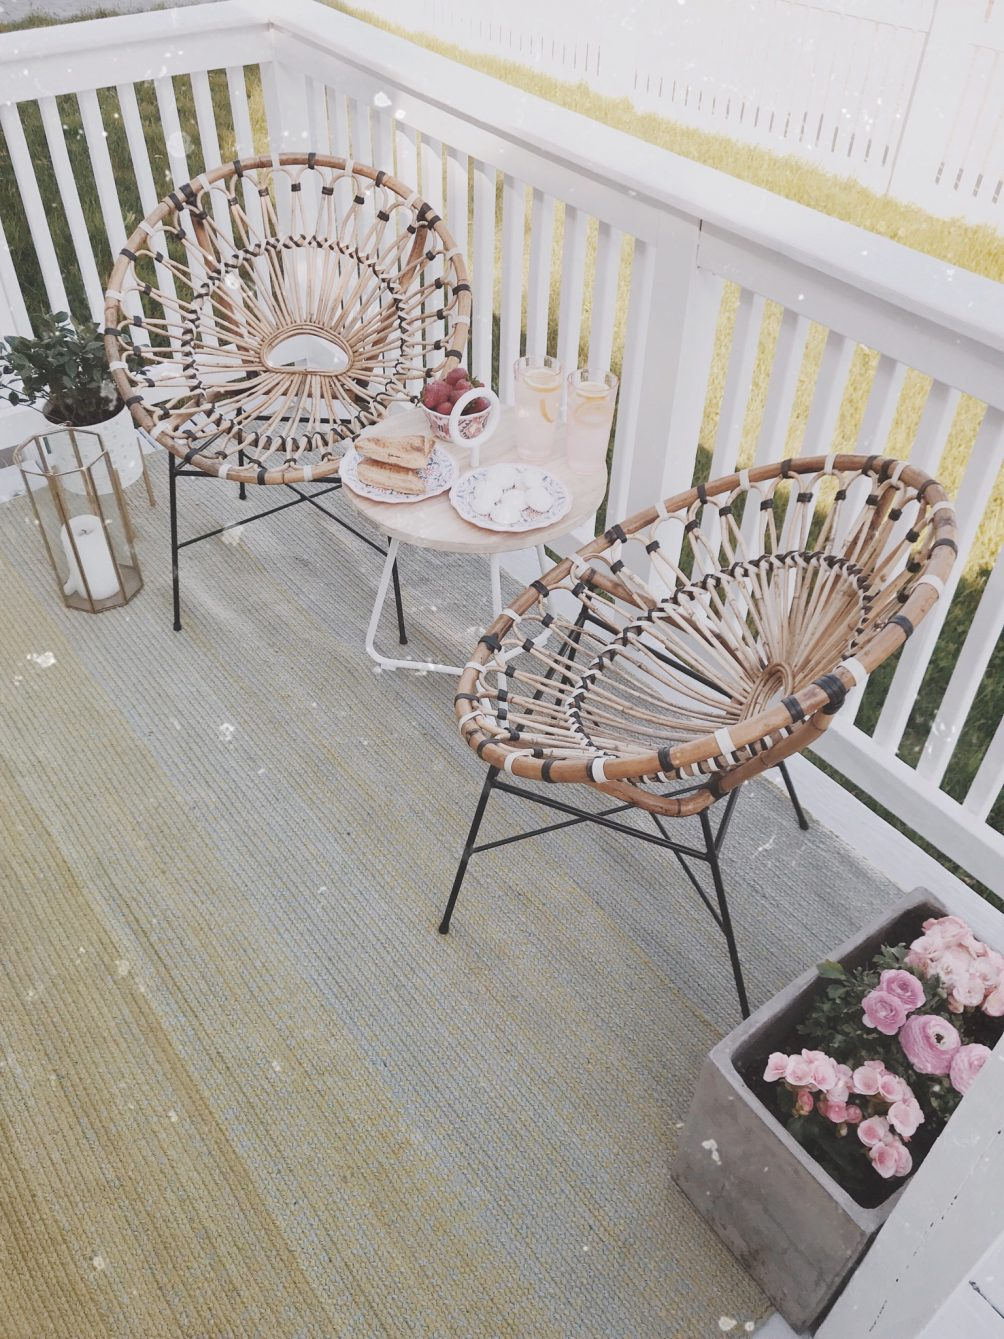 sharing our modern summer outdoor oasis with bohemian furniture pieces from Article